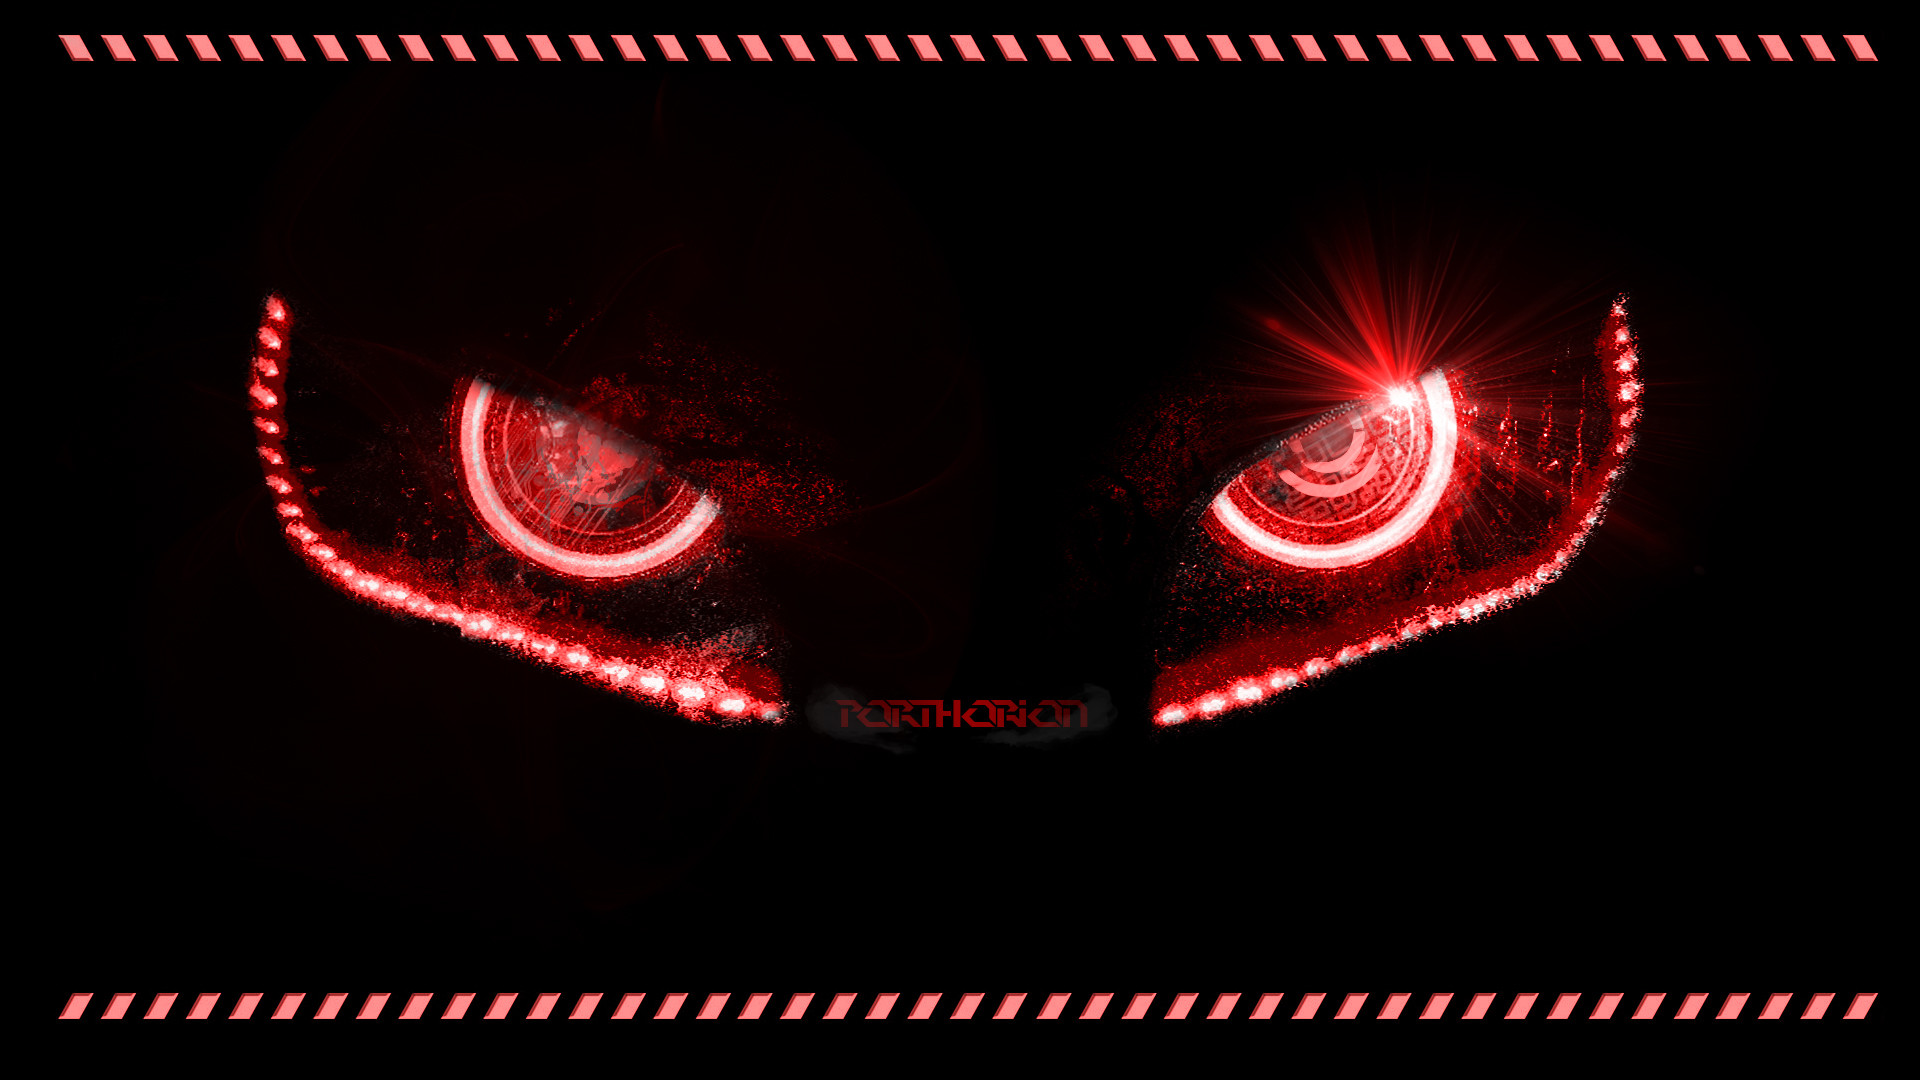 Res: 1920x1080, ... Badass Evil Robotic Eyes - With lines by porthorion